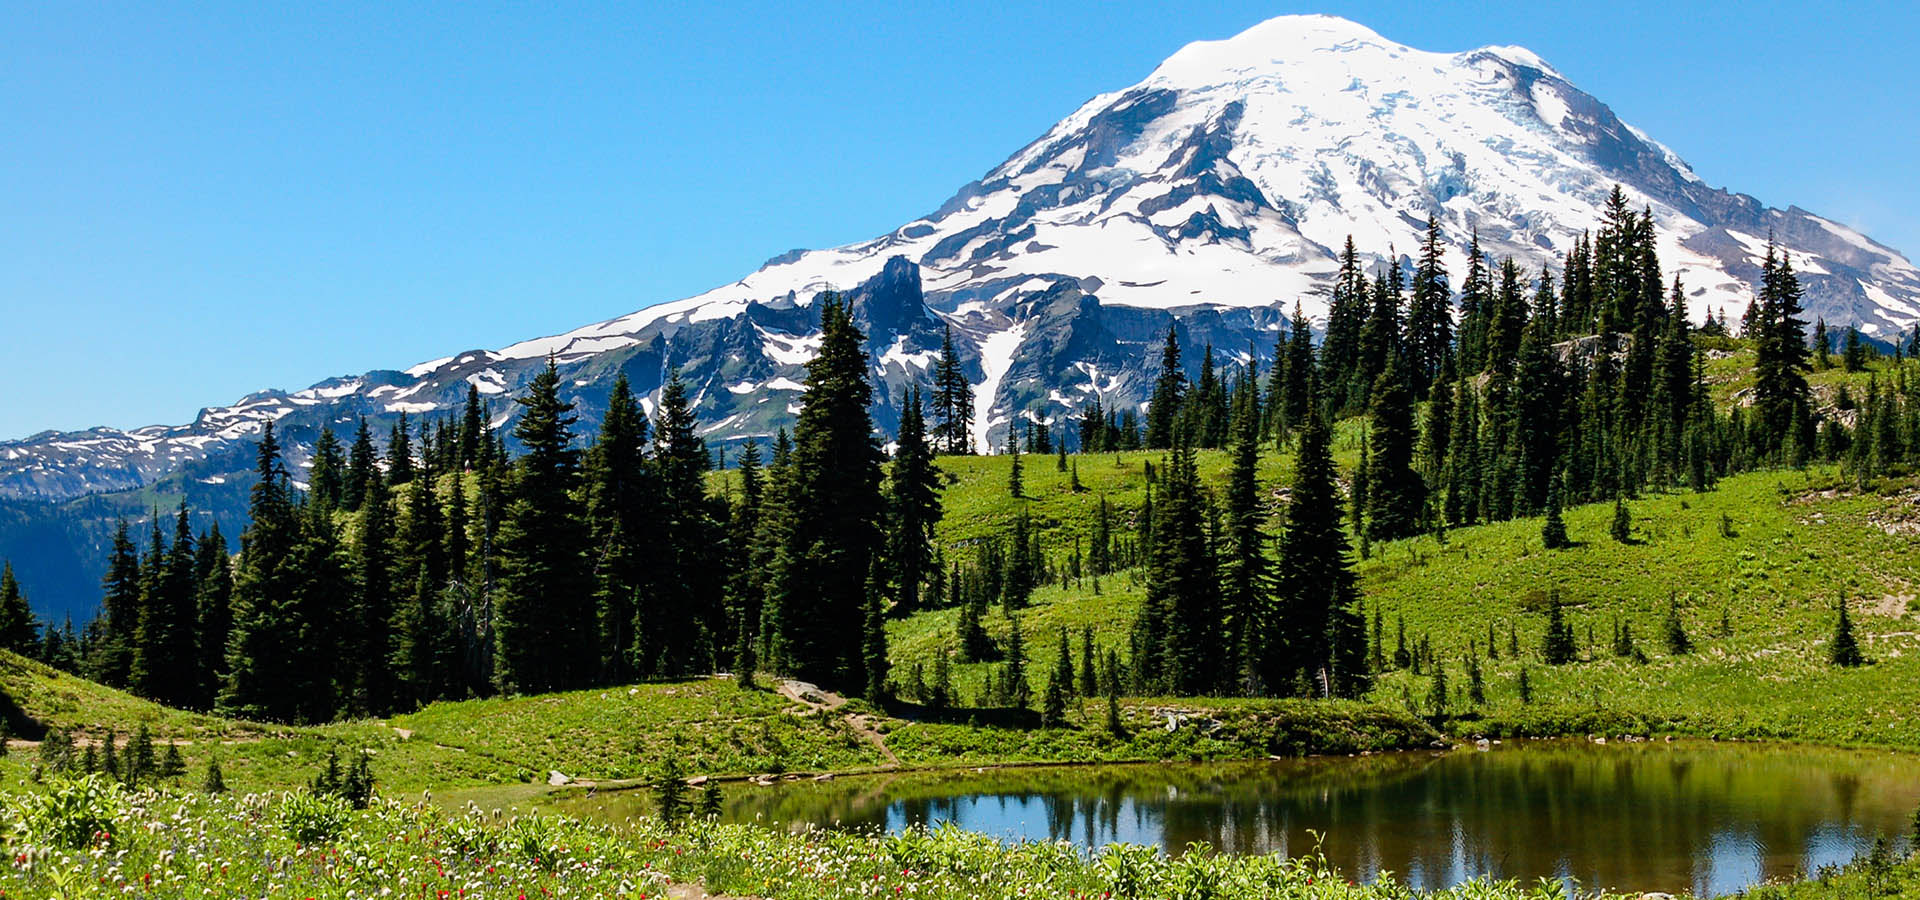 mount rainier Mount rainier (pronounced: / r eɪ ˈ n ɪər /), is the highest mountain of the cascade range of the pacific northwest, and the highest mountain in.